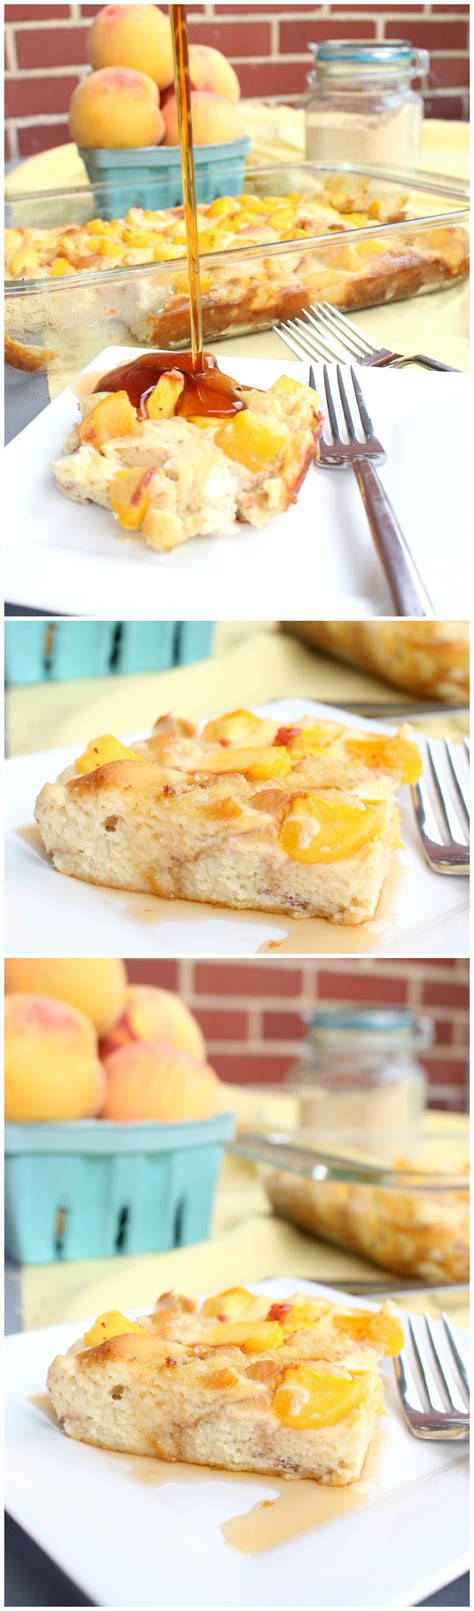 Peaches Cream French Toast Casserole Chocolate With